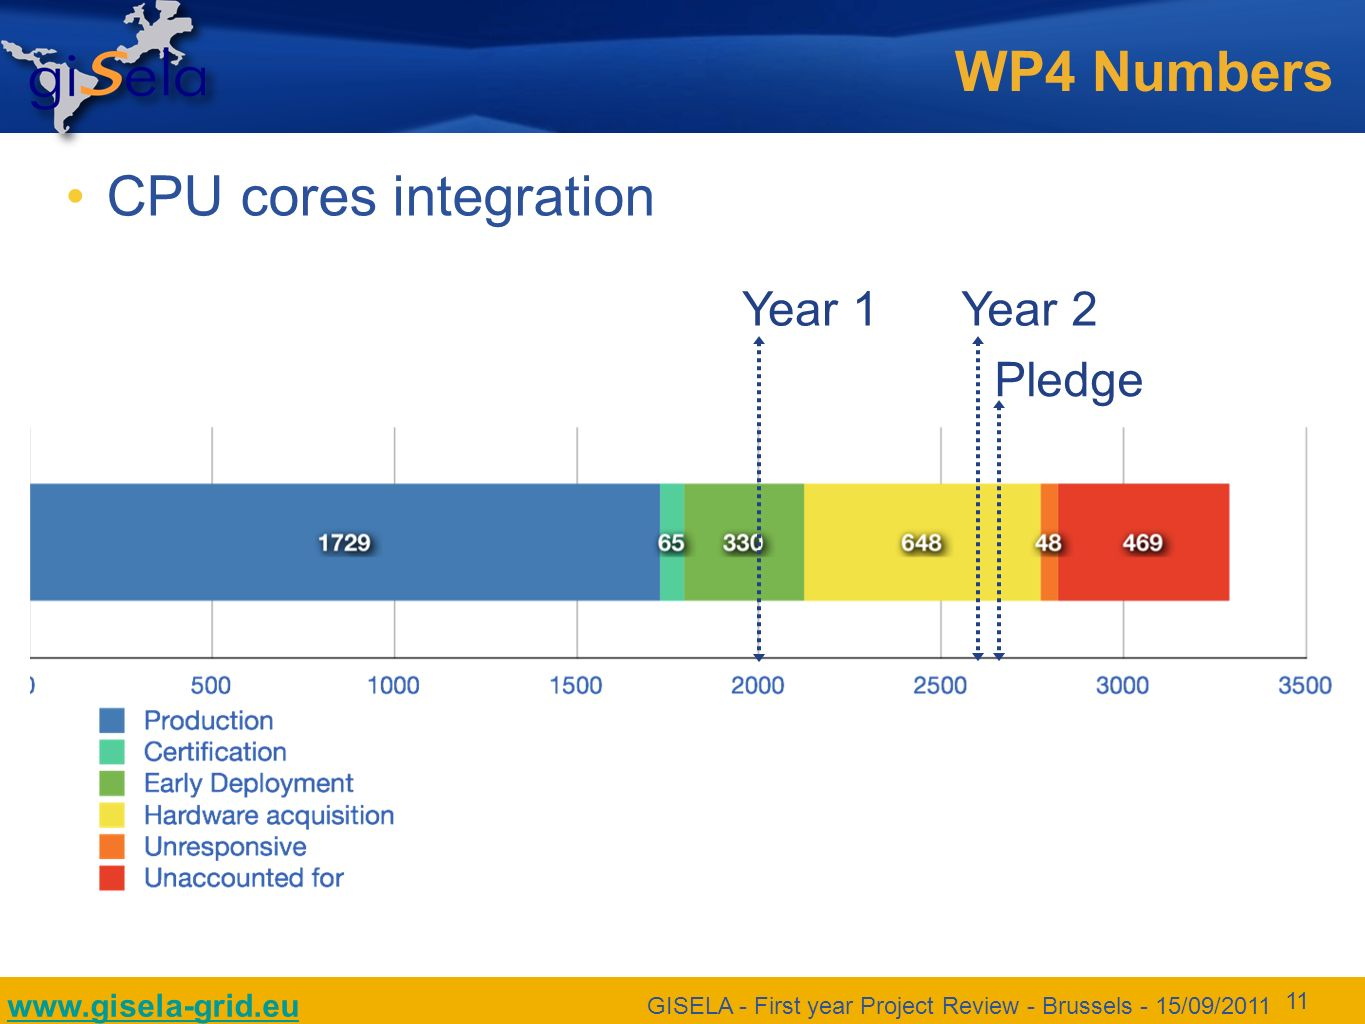 www.gisela-grid.eu GISELA - First year Project Review - Brussels - 15/09/2011 11 WP4 Numbers CPU cores integration Year 1Year 2 Pledge